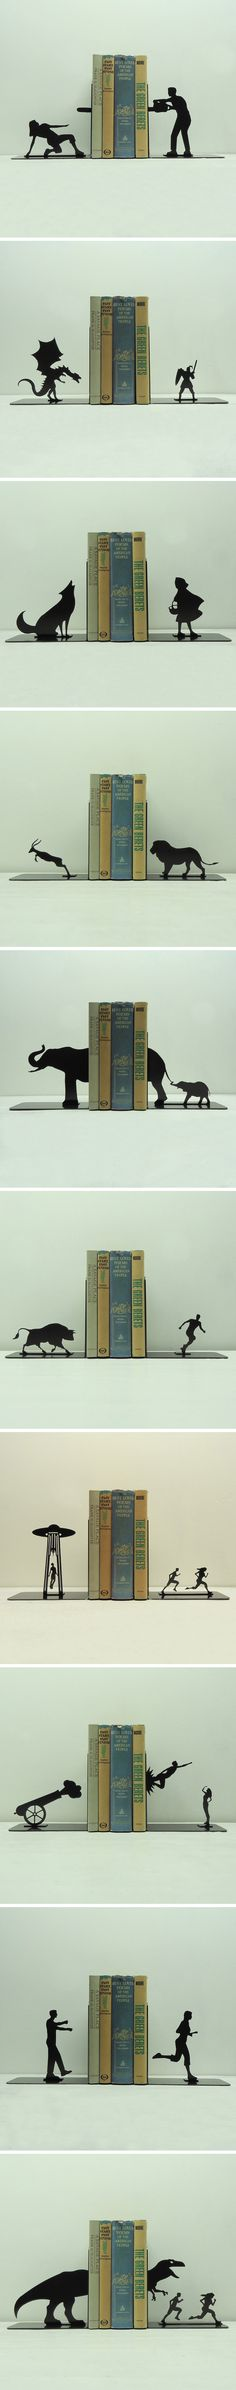 Clever bookends. I like the alien invasion and the t-rex